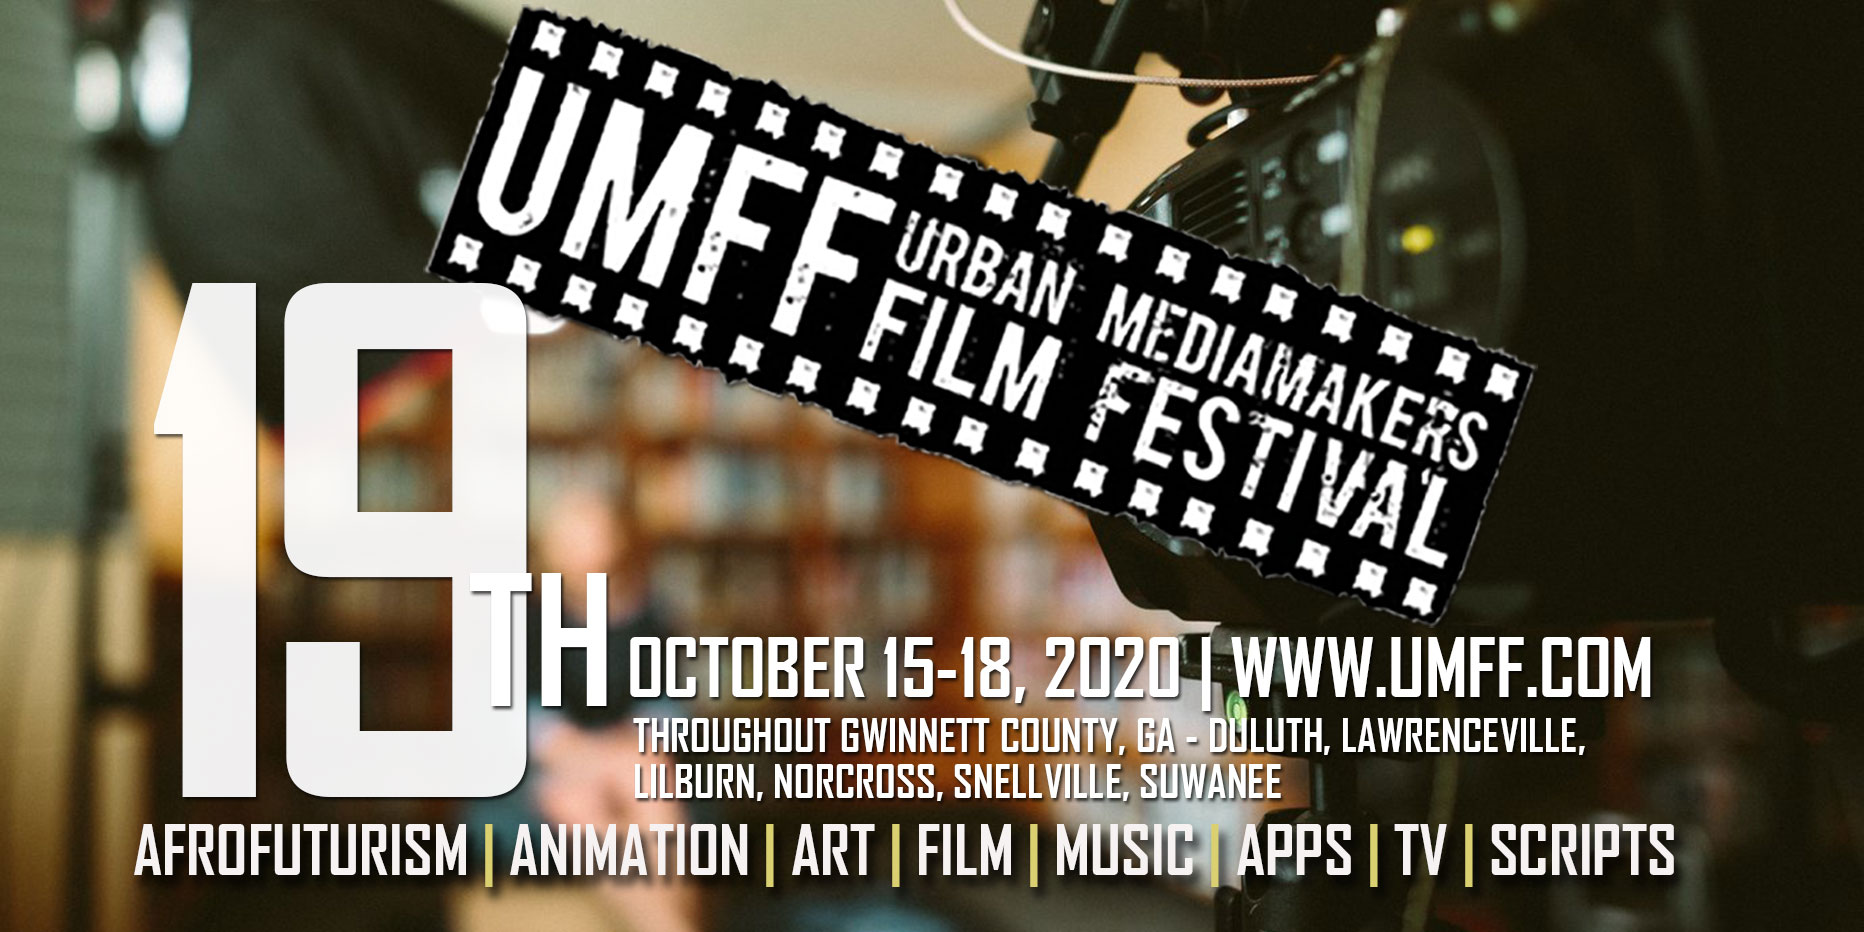 19th Urban Mediamakers Film Festival 2020